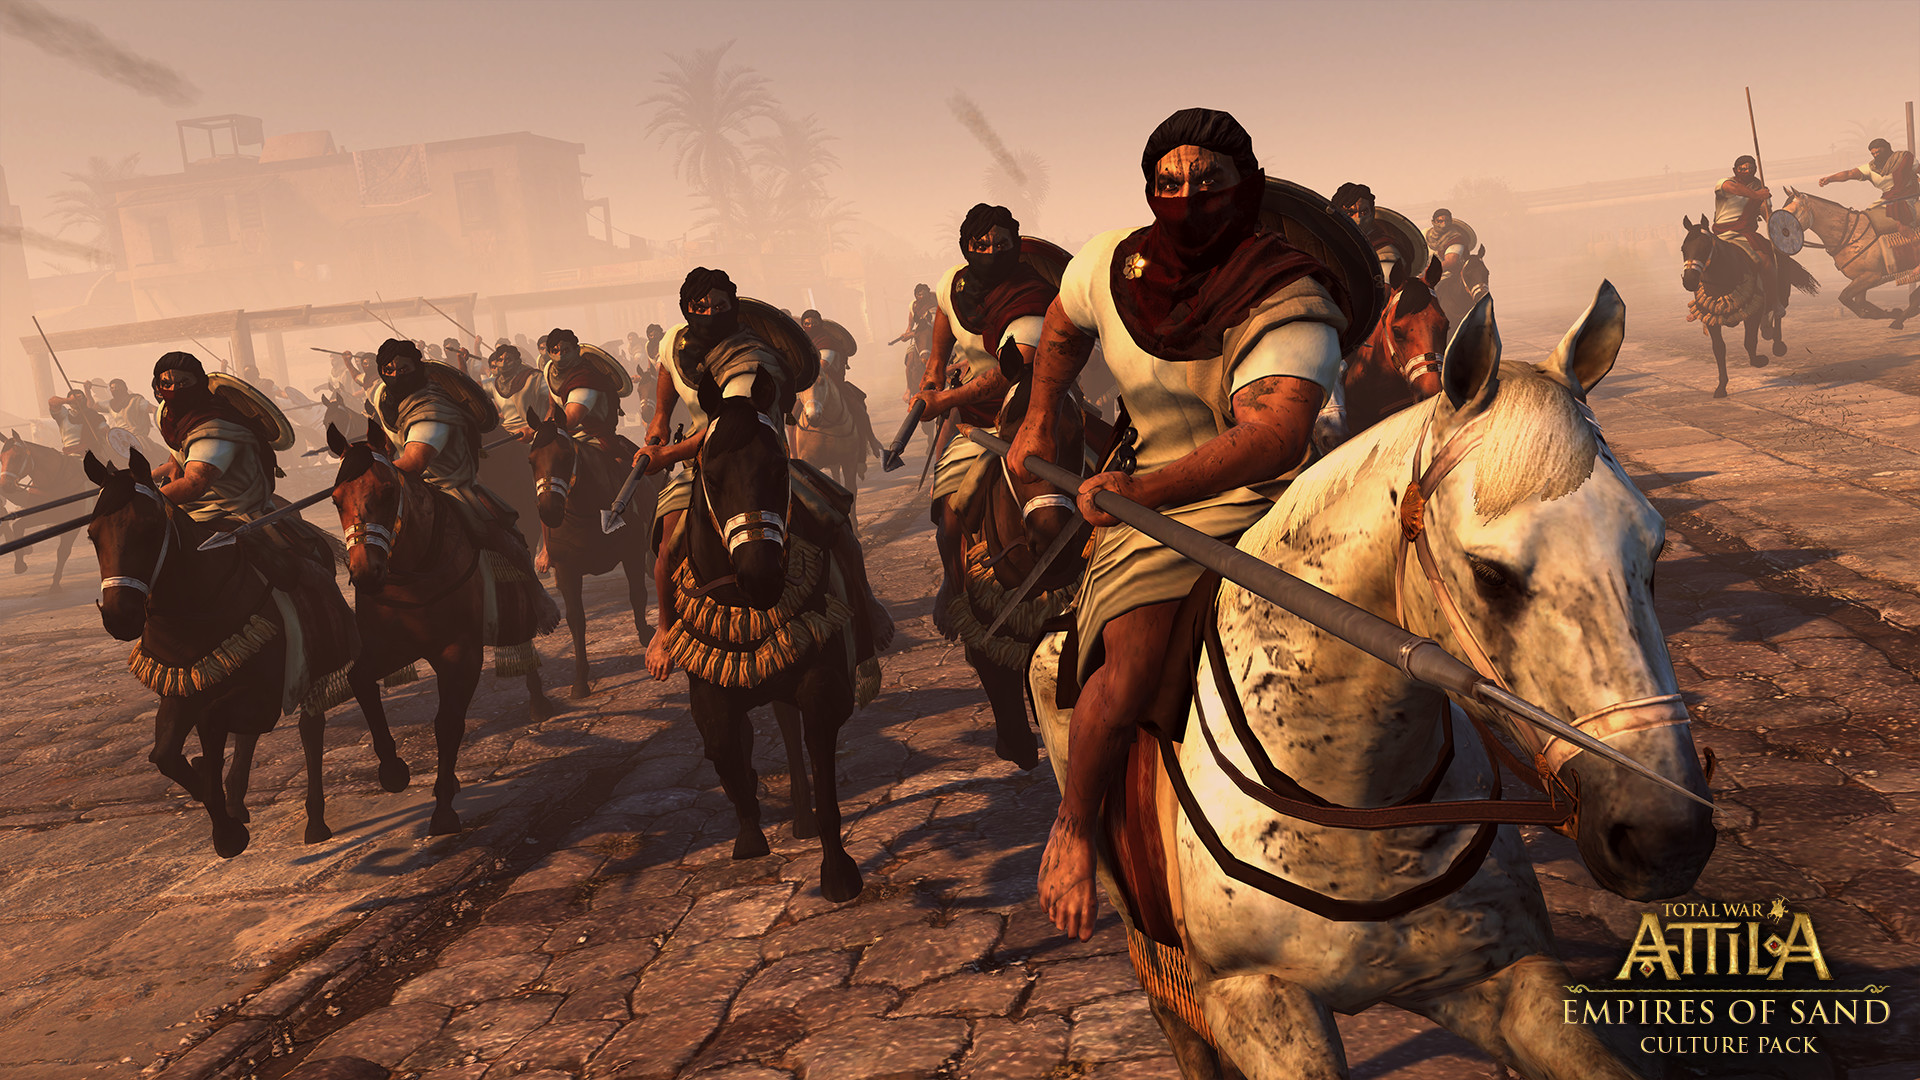 Empires Of Sand Culture Pack Out Next Week For Total War